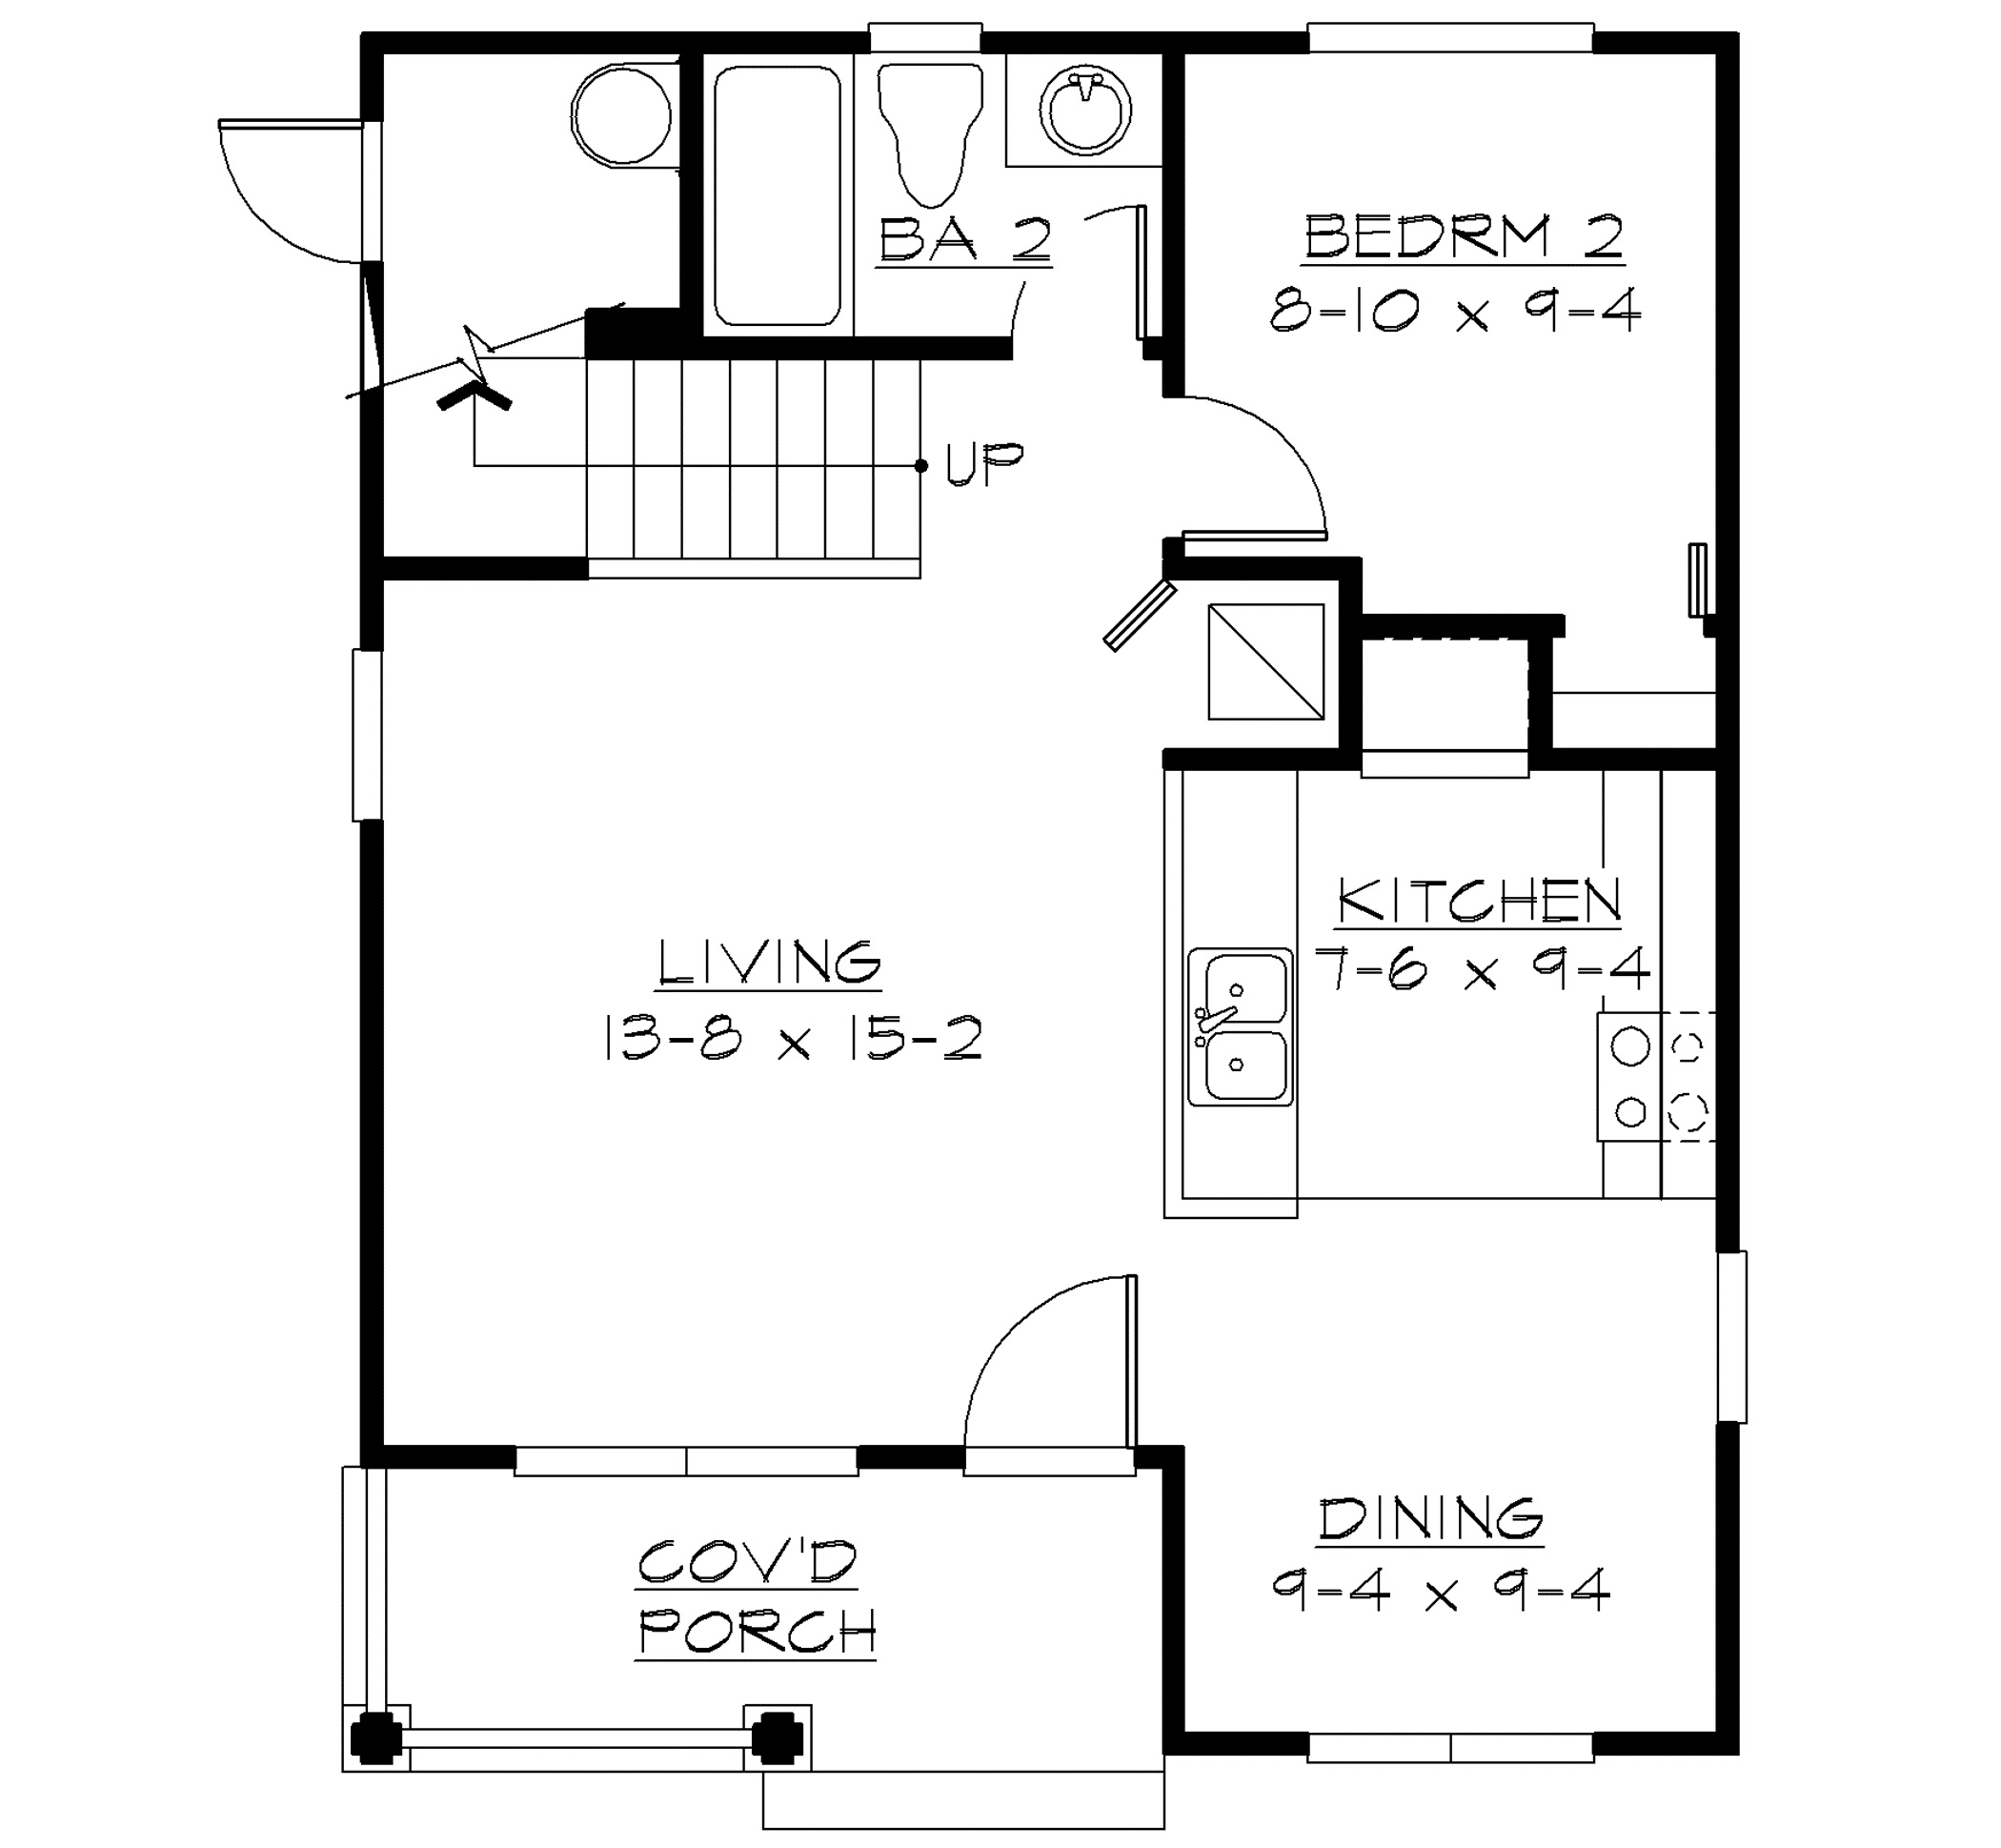 Small house plan first floor layout sdl custom homes for Floor plans first